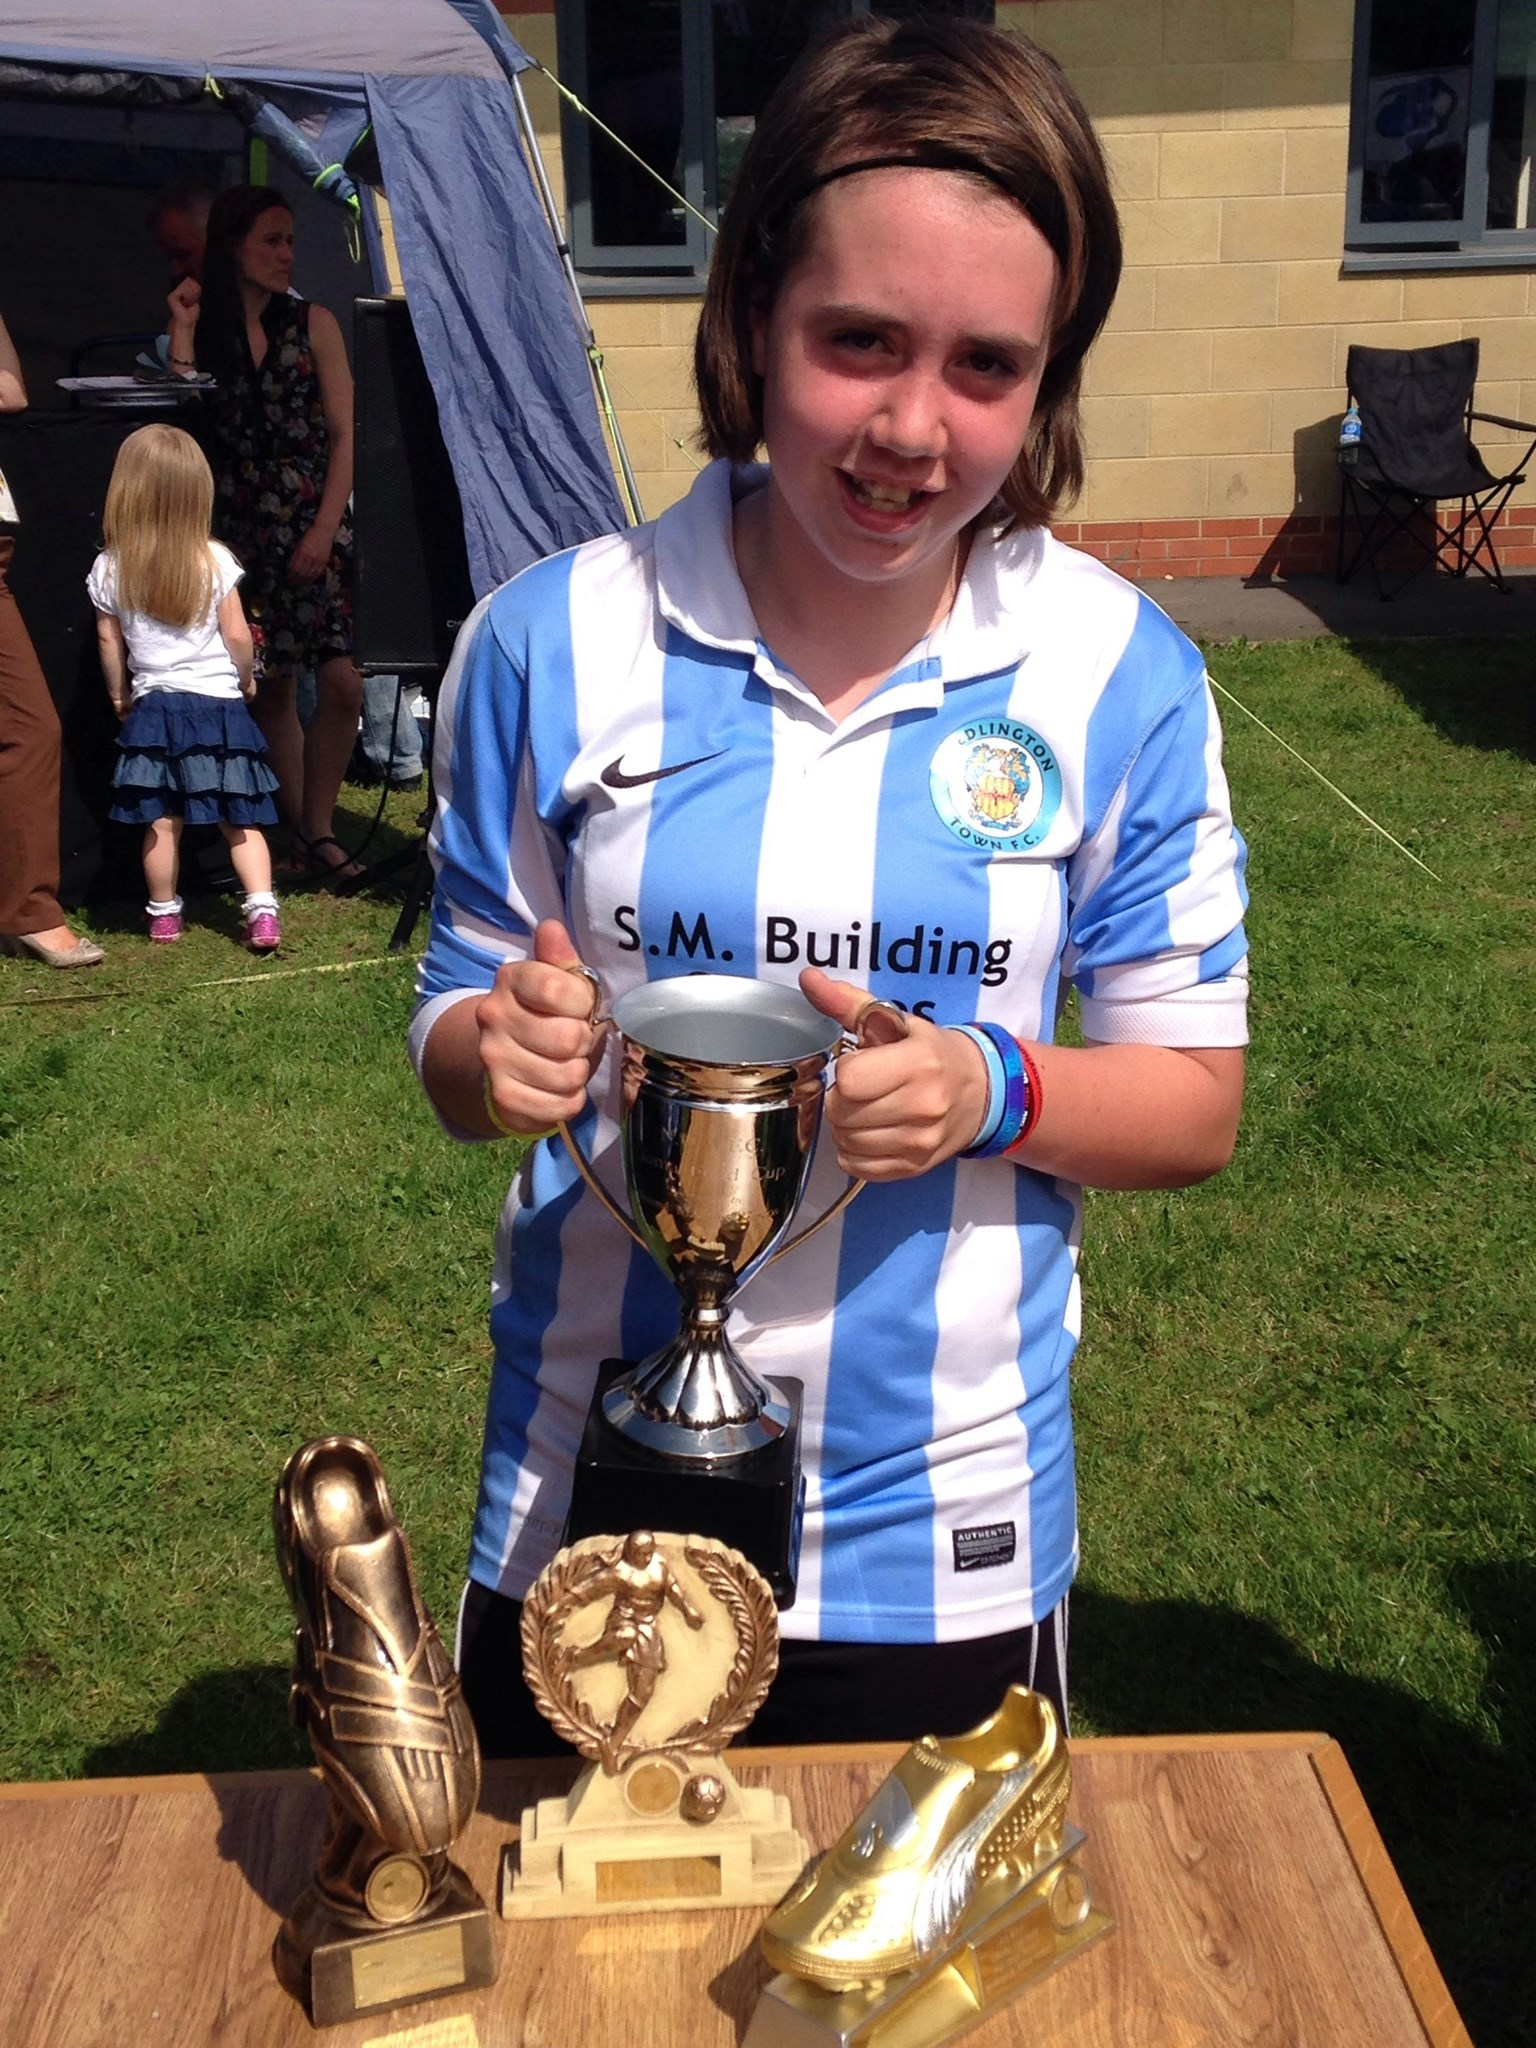 Your beautiful granddaughter Megan she is making us all proud and Iam sure you are too she loves you